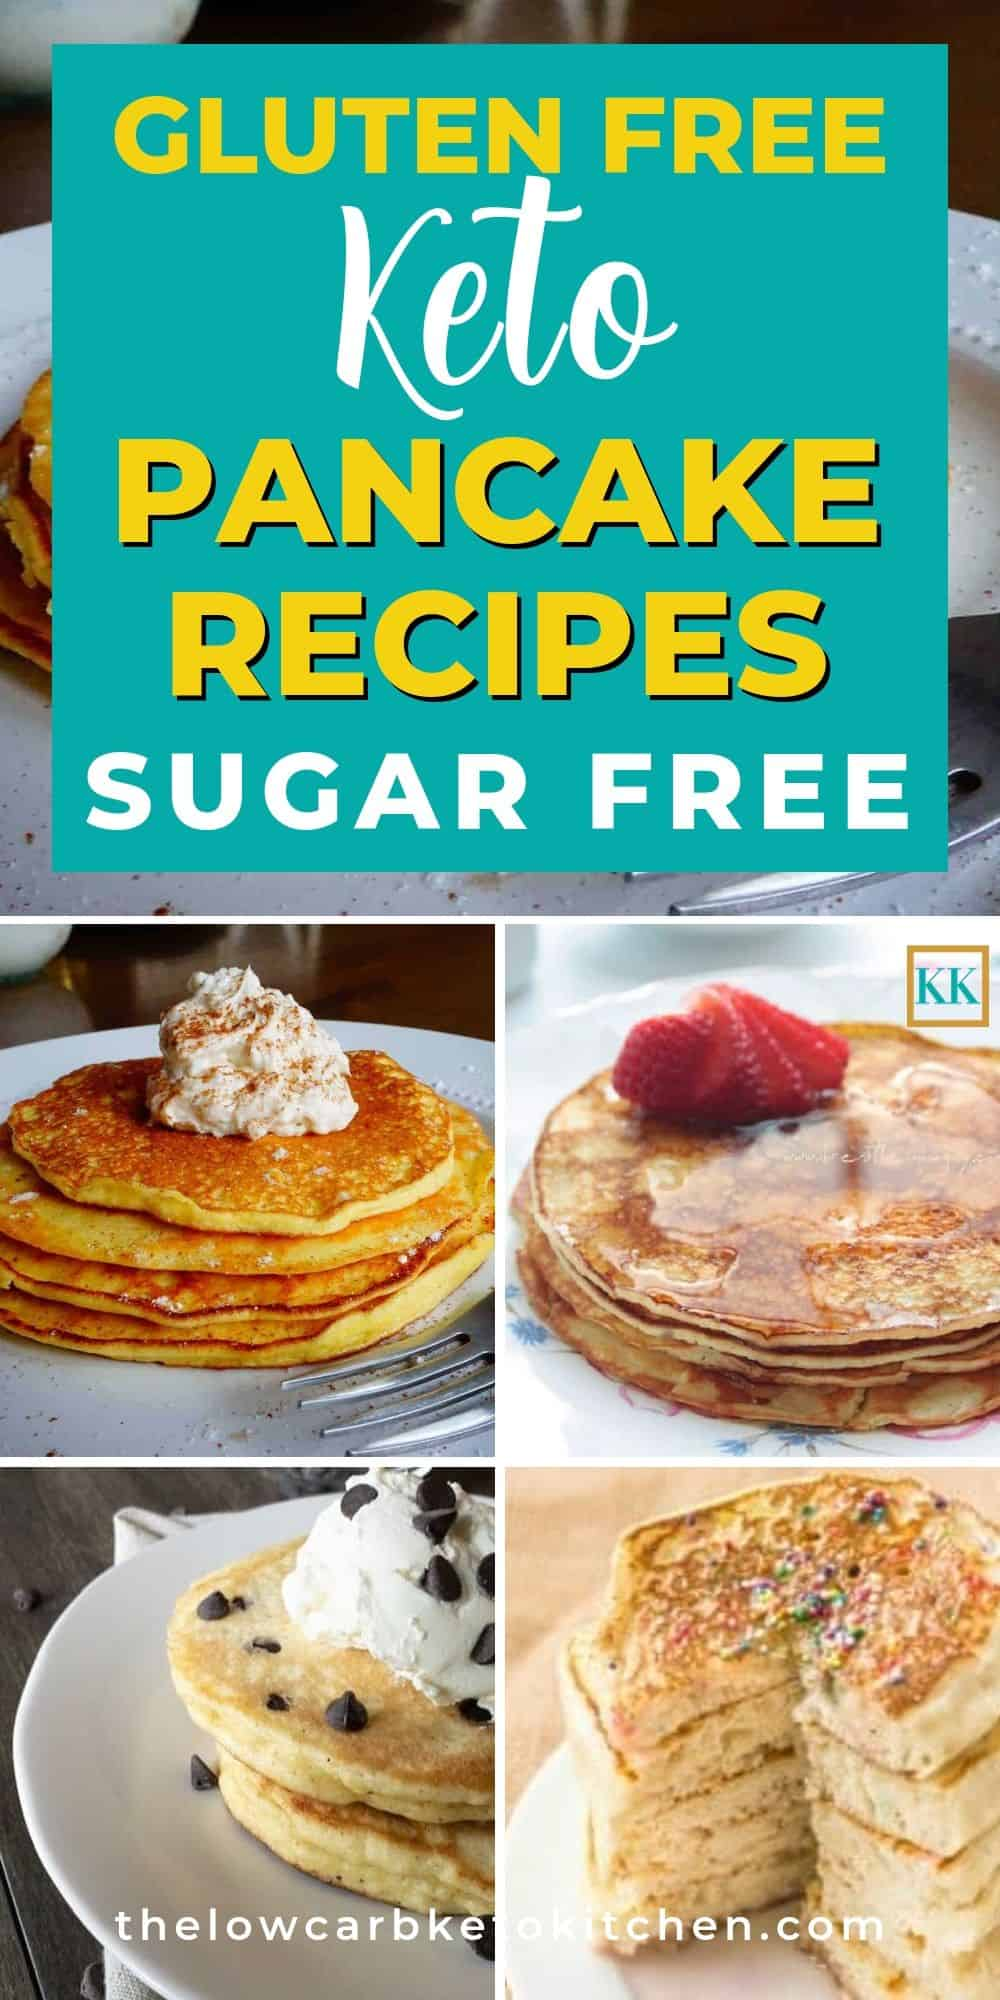 Keto Pancake Picture Collage